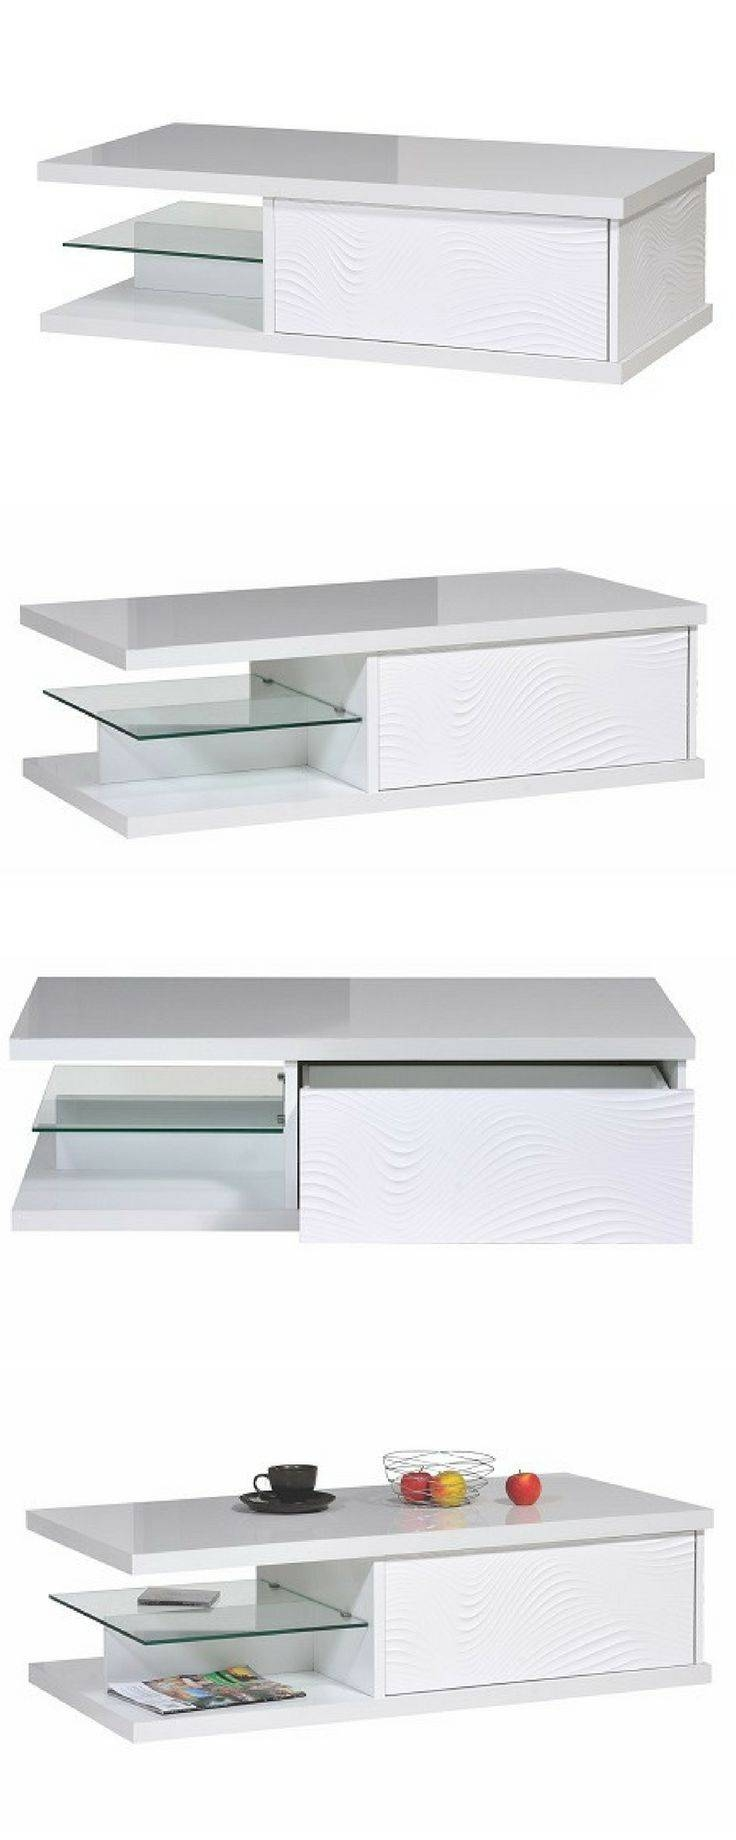 Best 25+ White Gloss Coffee Table Ideas On Pinterest | Table Tops Throughout White Gloss Coffee Tables (View 3 of 30)